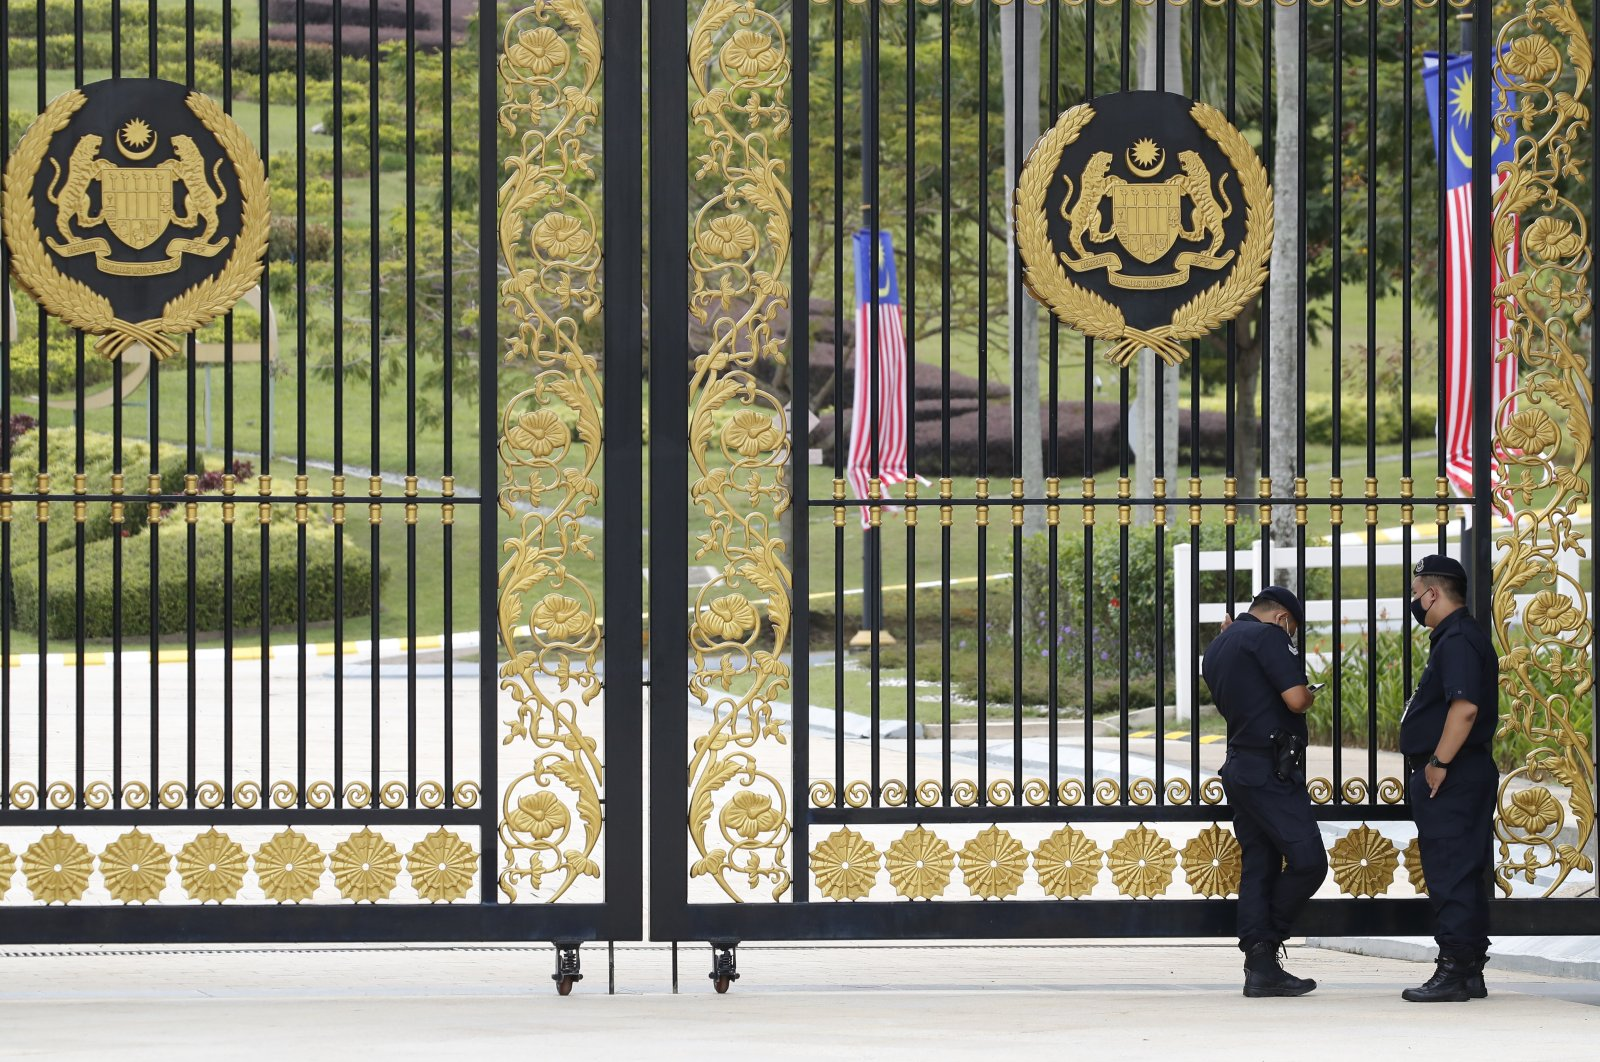 Police stand guard outside the main gate of the National Palace while Malaysia's Prime Minister Muhyiddin Yassin meets the king in Kuala Lumpur, Malaysia, Aug. 16, 2021. (AP Photo)